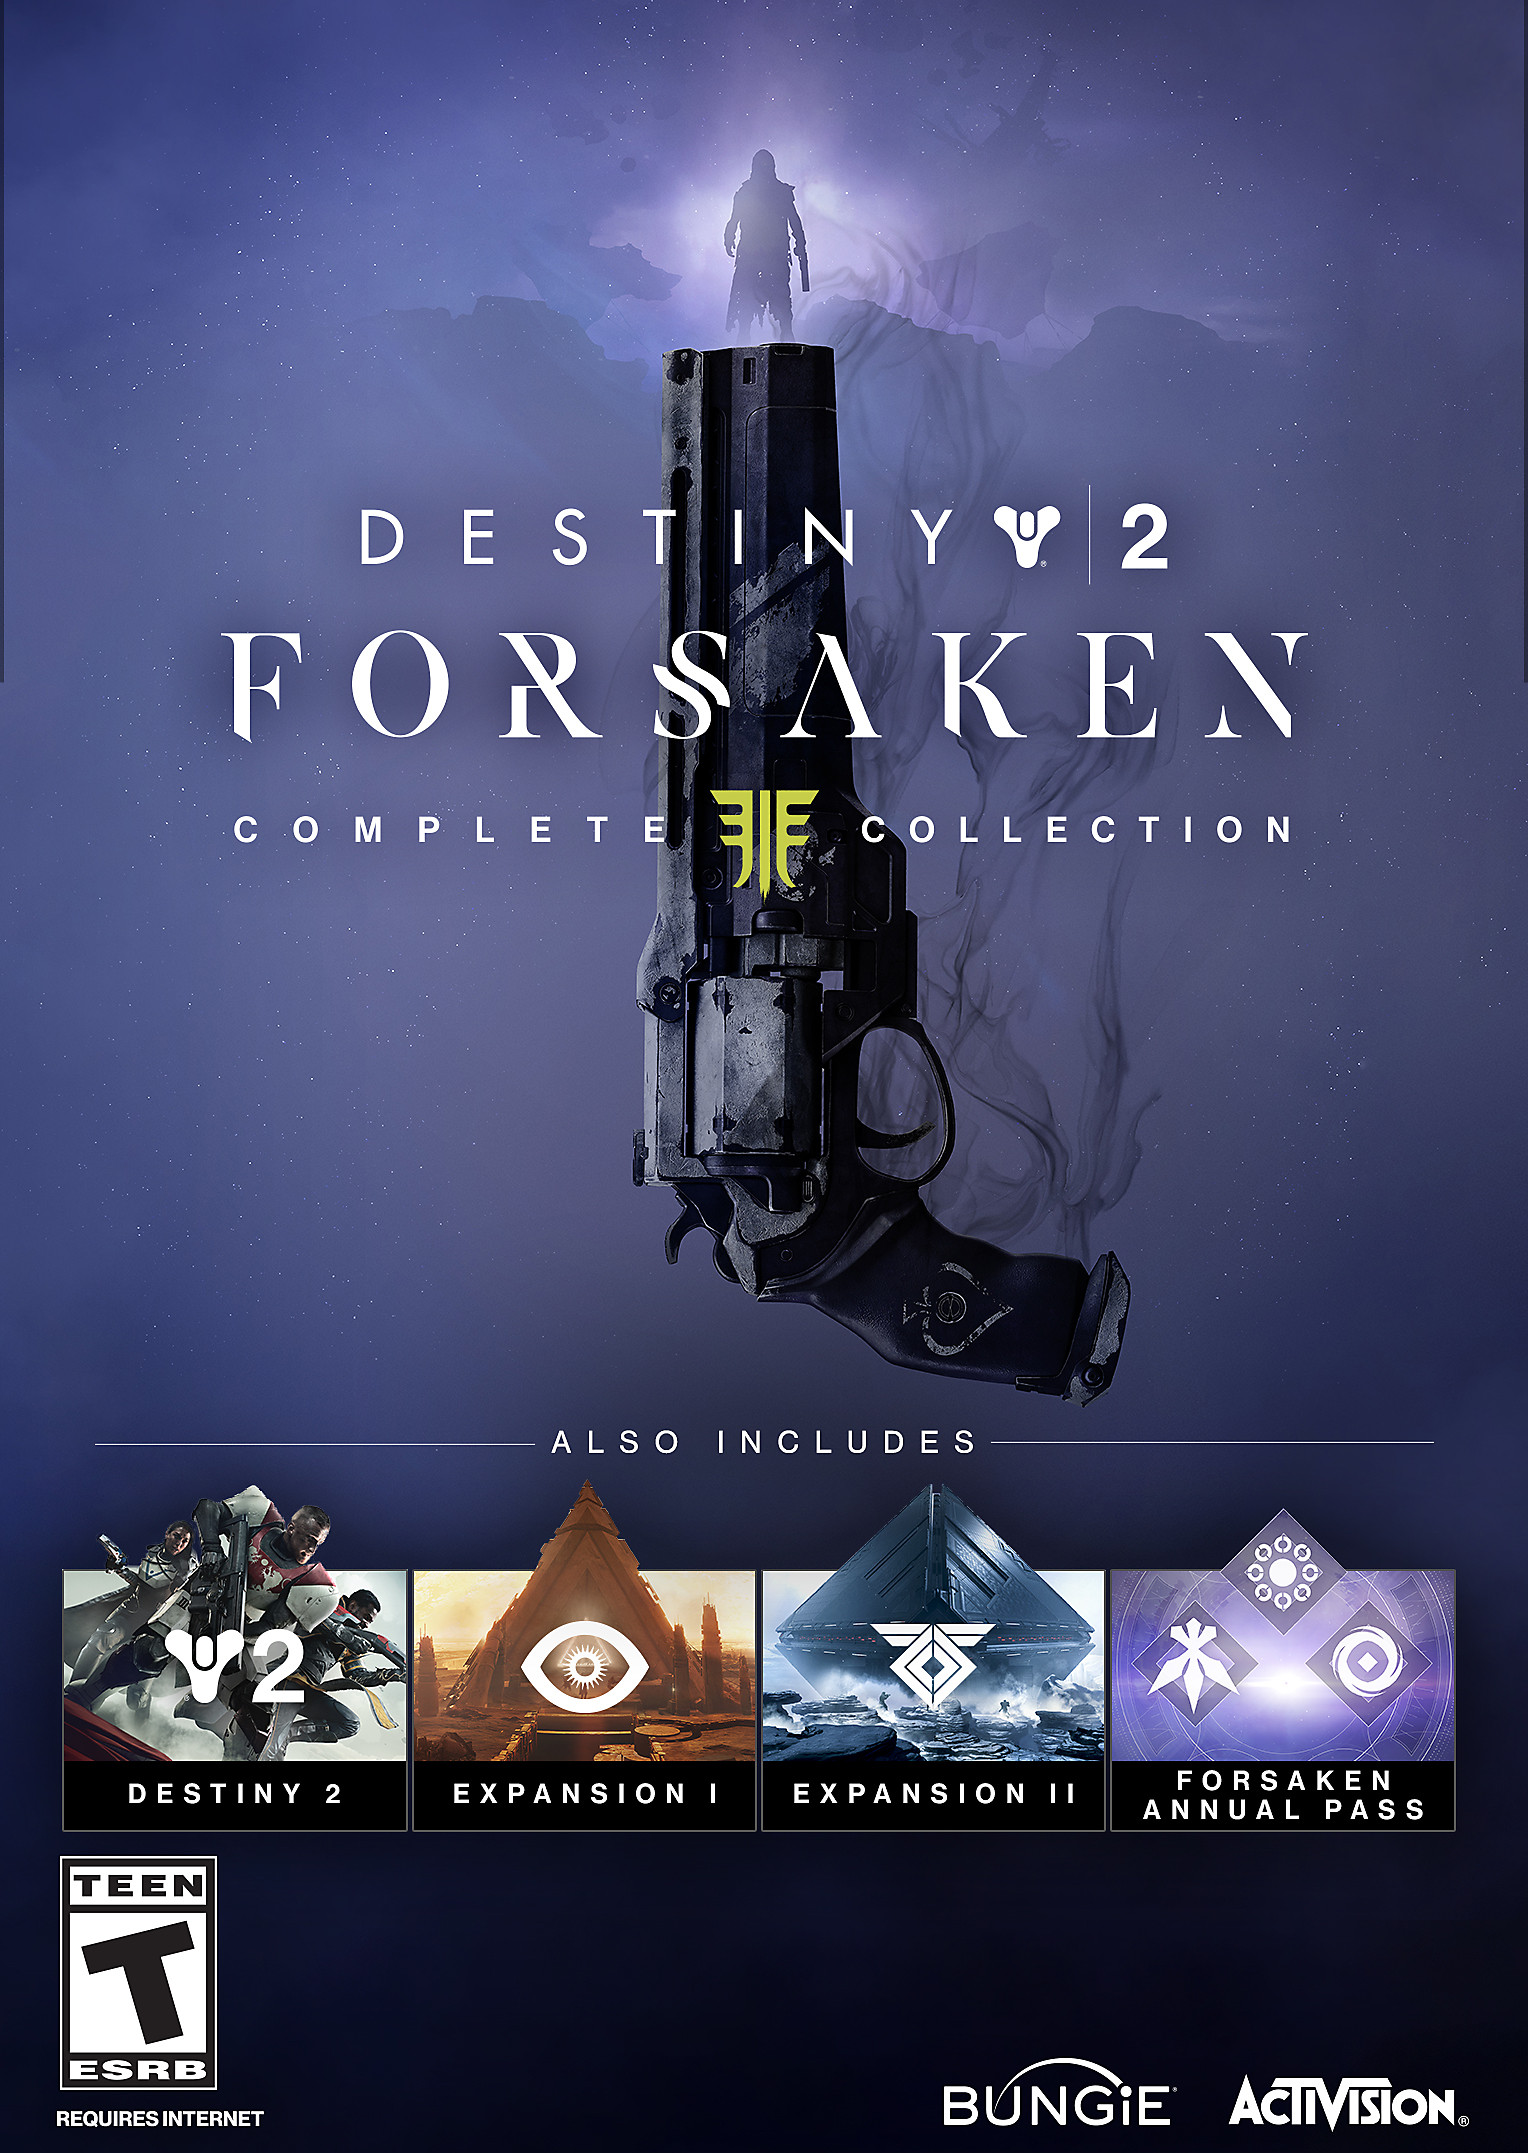 175bd4c61ee Destiny 2 Forsaken Complete Collection Art